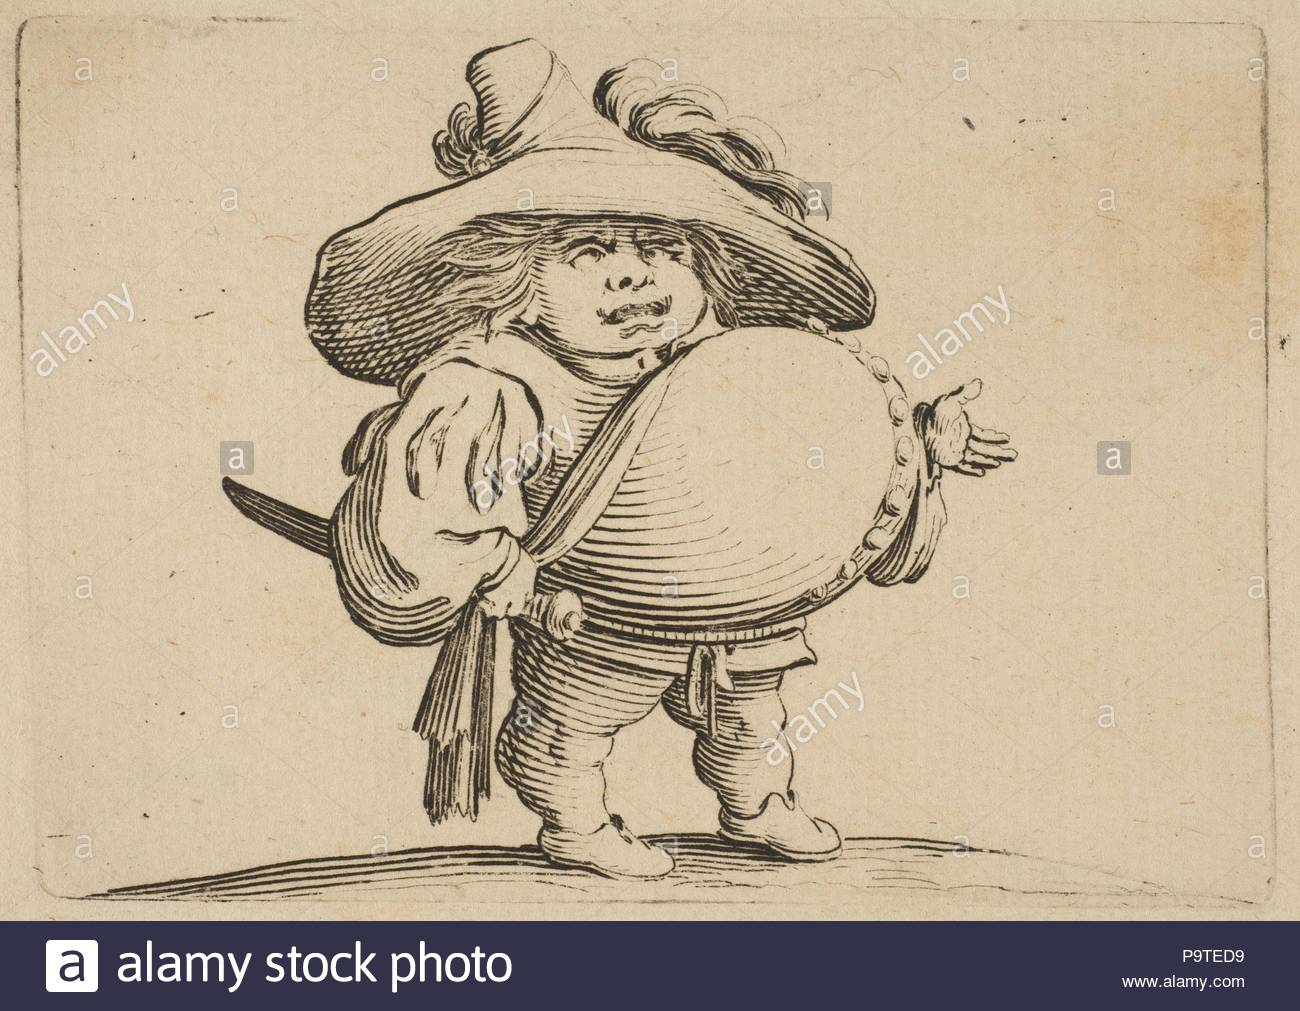 L'Homme au Gros Ventre Orné d'une Rangée de Boutons (Man with a Large Belly Decorated with a Row of Buttons), from Varie Figure Gobbi, suite appelée aussi Les Bossus, Les Pygmées, Les Nains Grotesques (Various Hunchbacked Figures, The Hunchbacks, The Pygmes, The Grotesque Dwarfs), 1616–22, Etching and engraving; first state of two (Lieure), Sheet: 7 5/16 x 10 5/16 in. (18.5 x 26.2 cm), Prints, Jacques Callot (French, Nancy 1592–1635 Nancy). - Stock Image